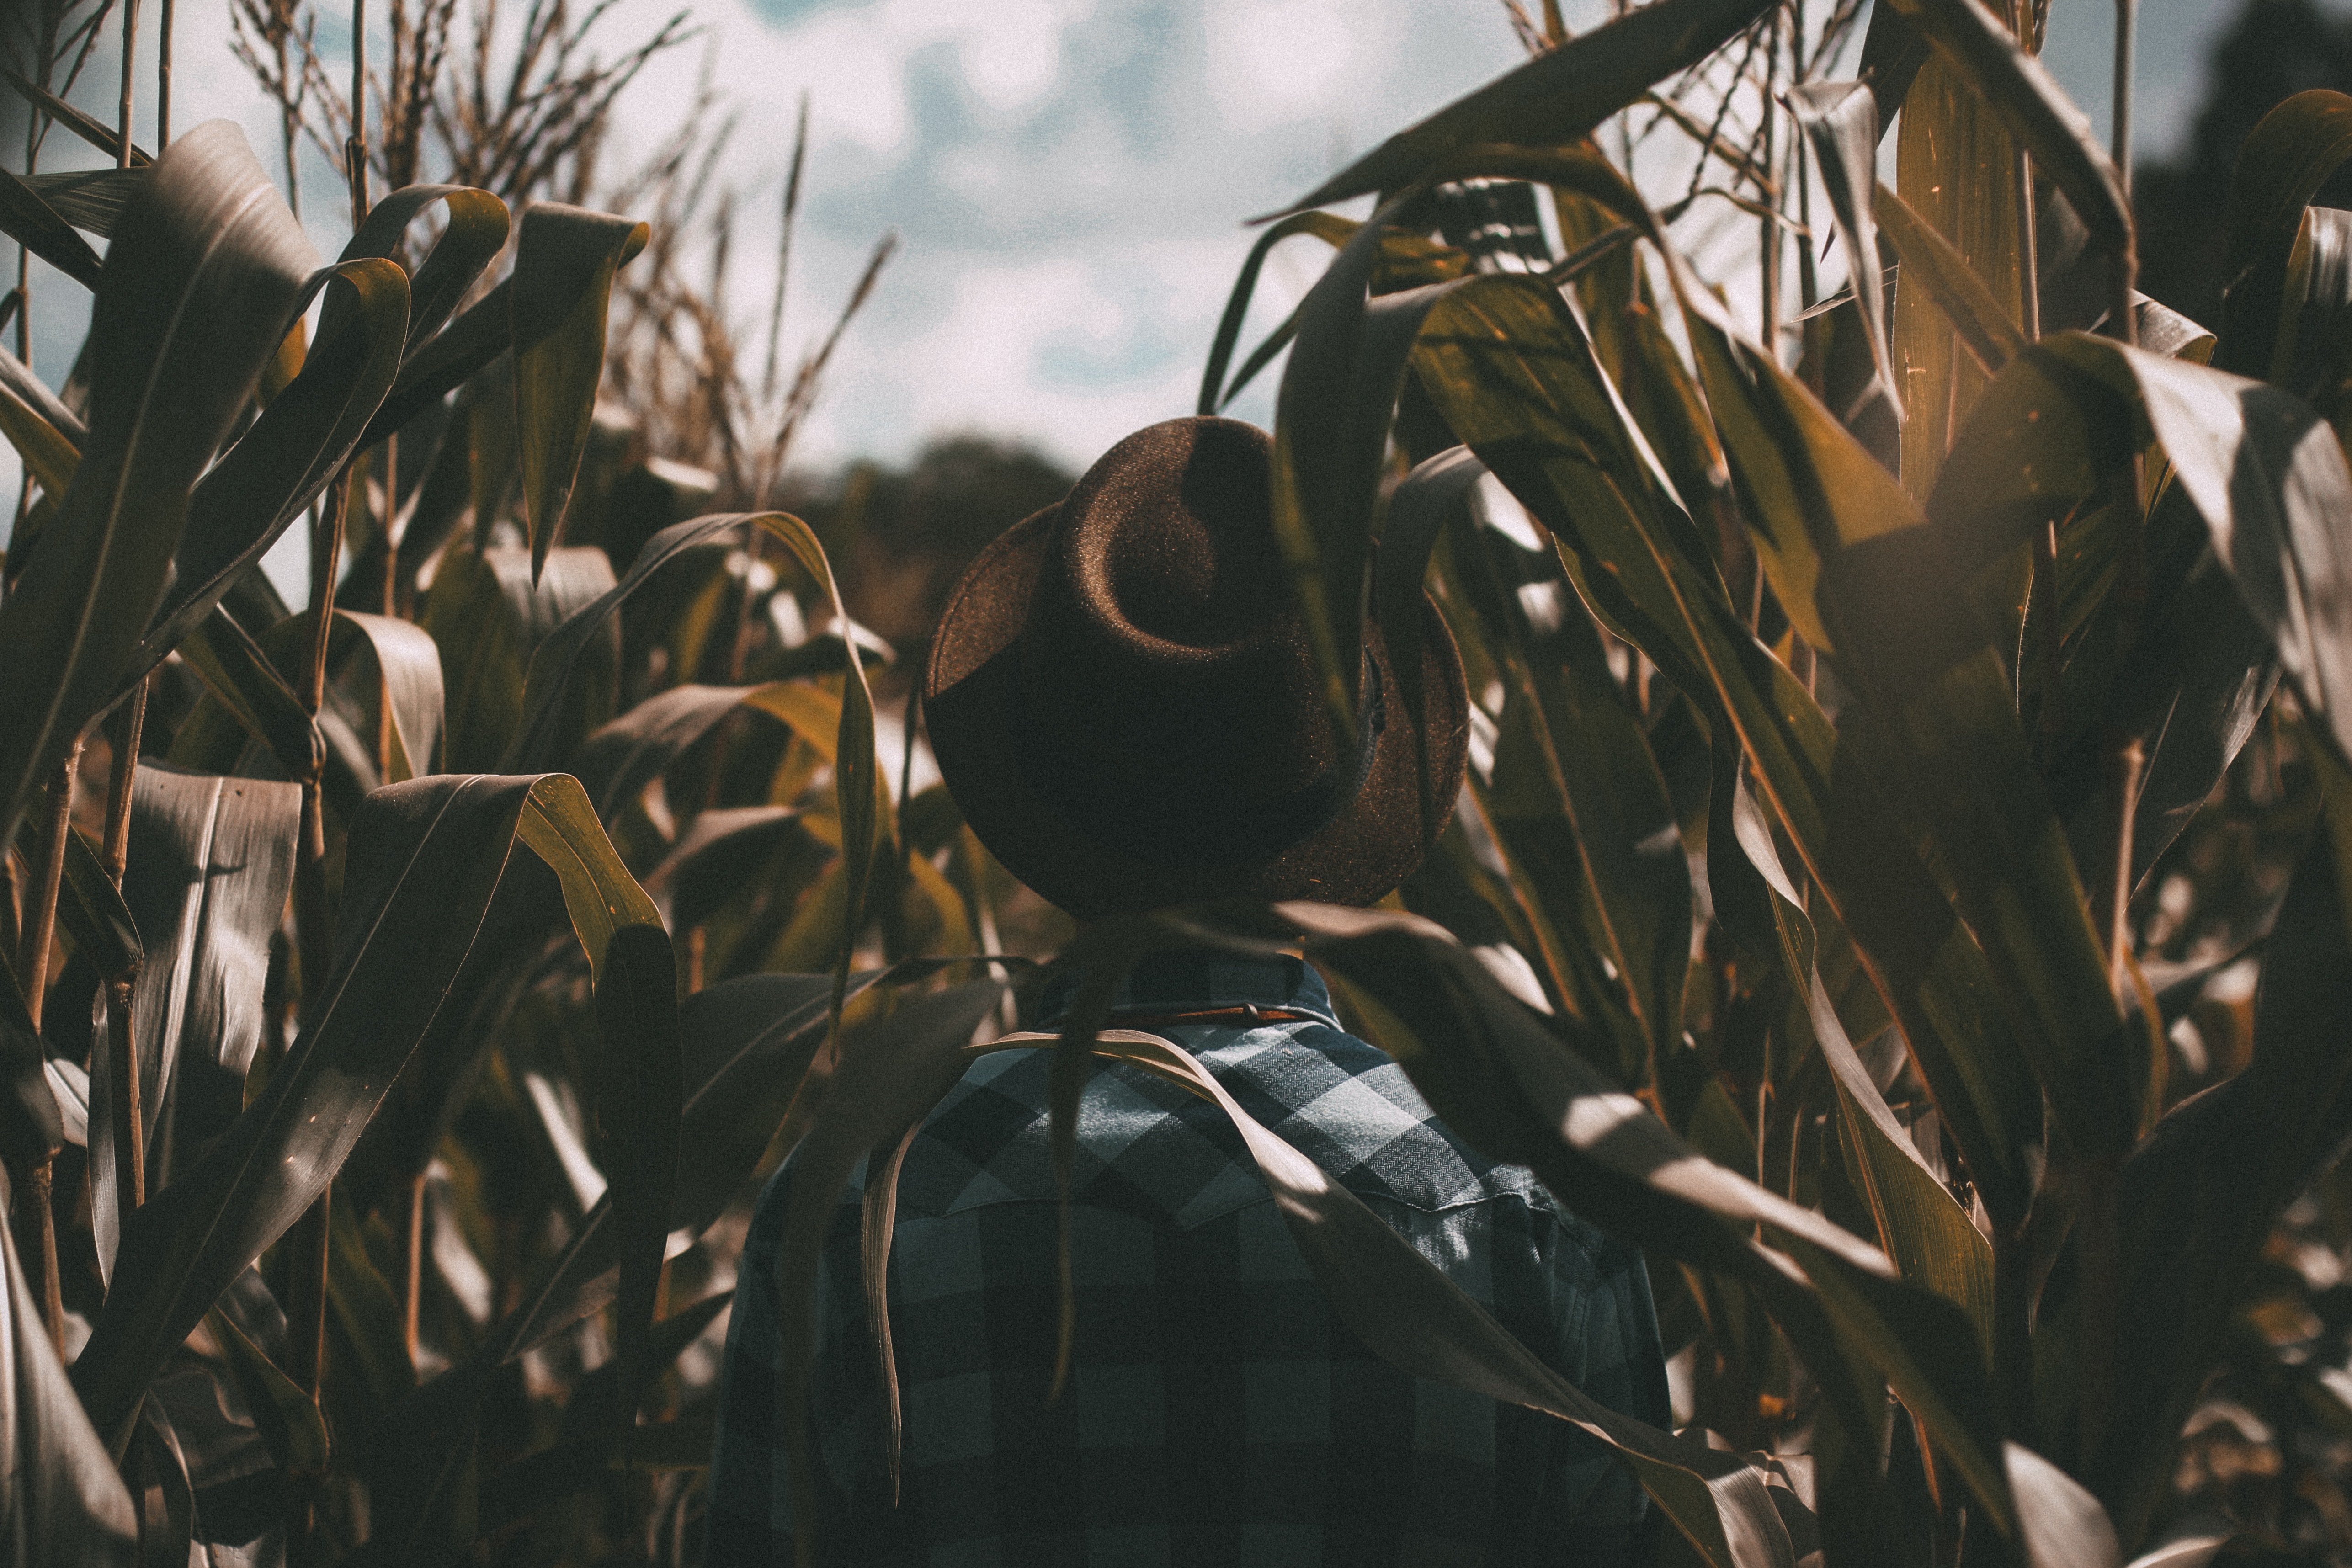 A person wearing a brown hat and plaid shirt standing in the middle of a cornfield in Cianorte